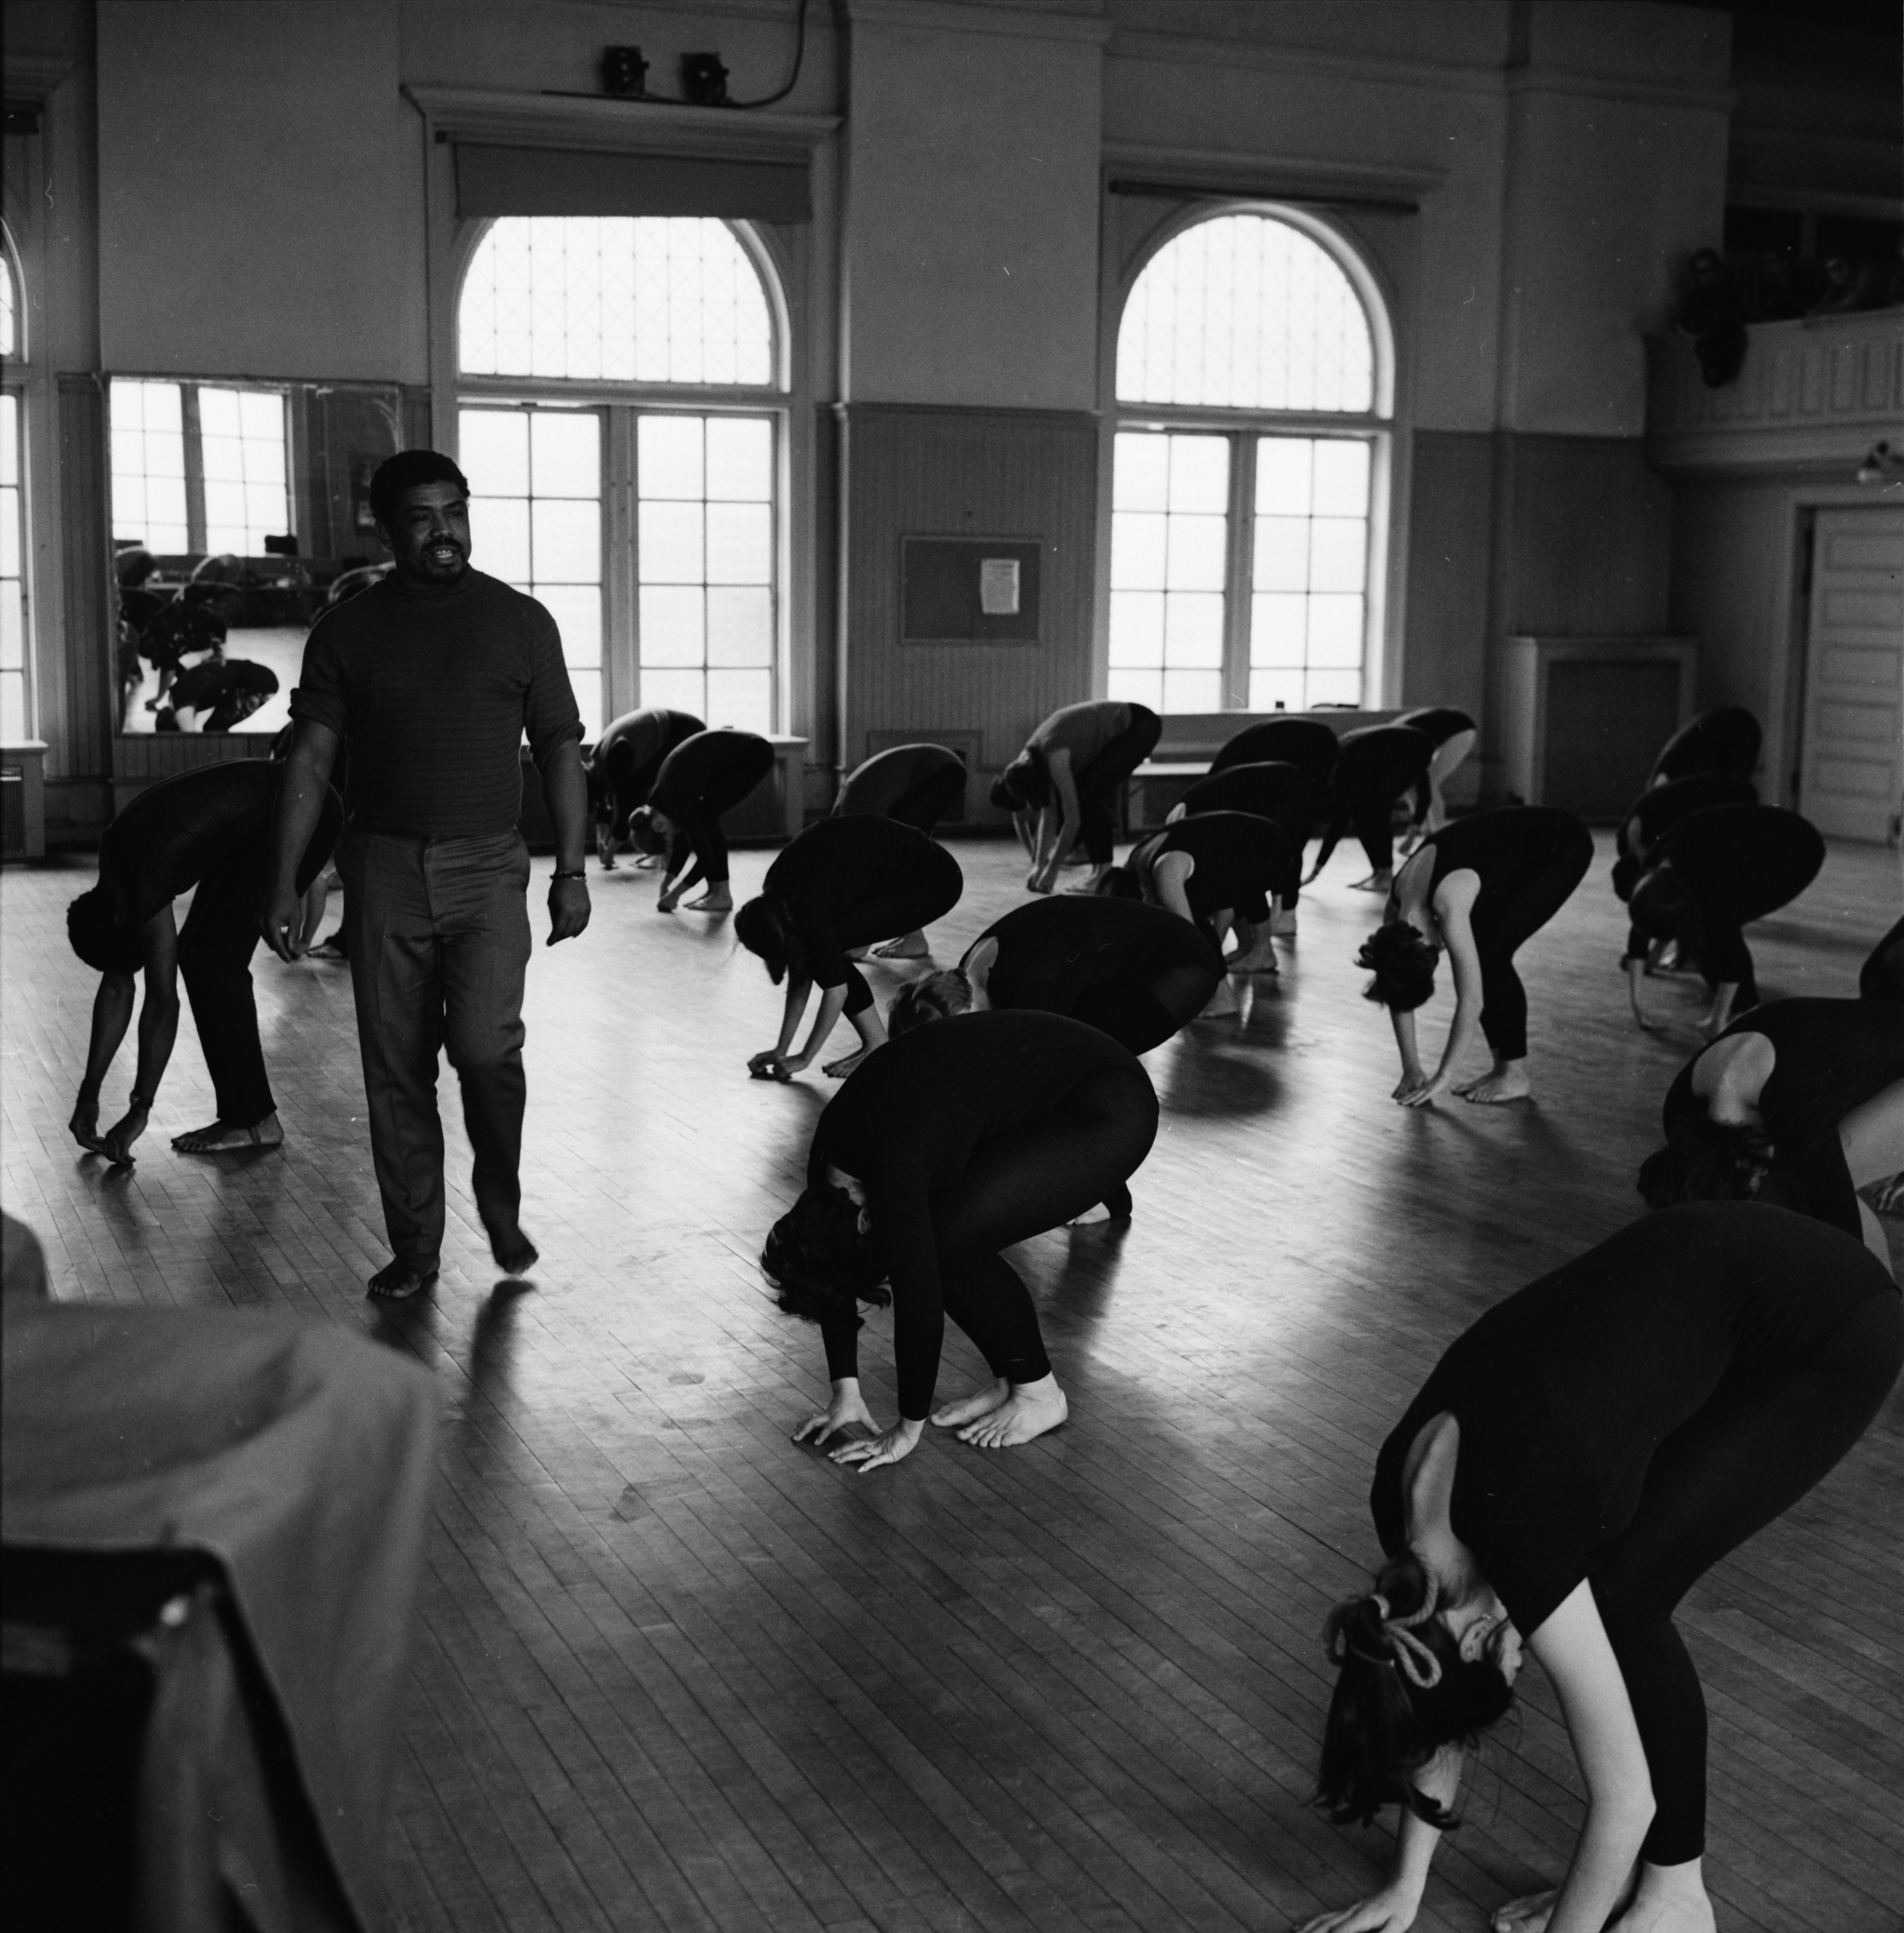 Alvin Ailey of Alvin Ailey American Dance Theater visits University of Michigan dance class, February 1969 image